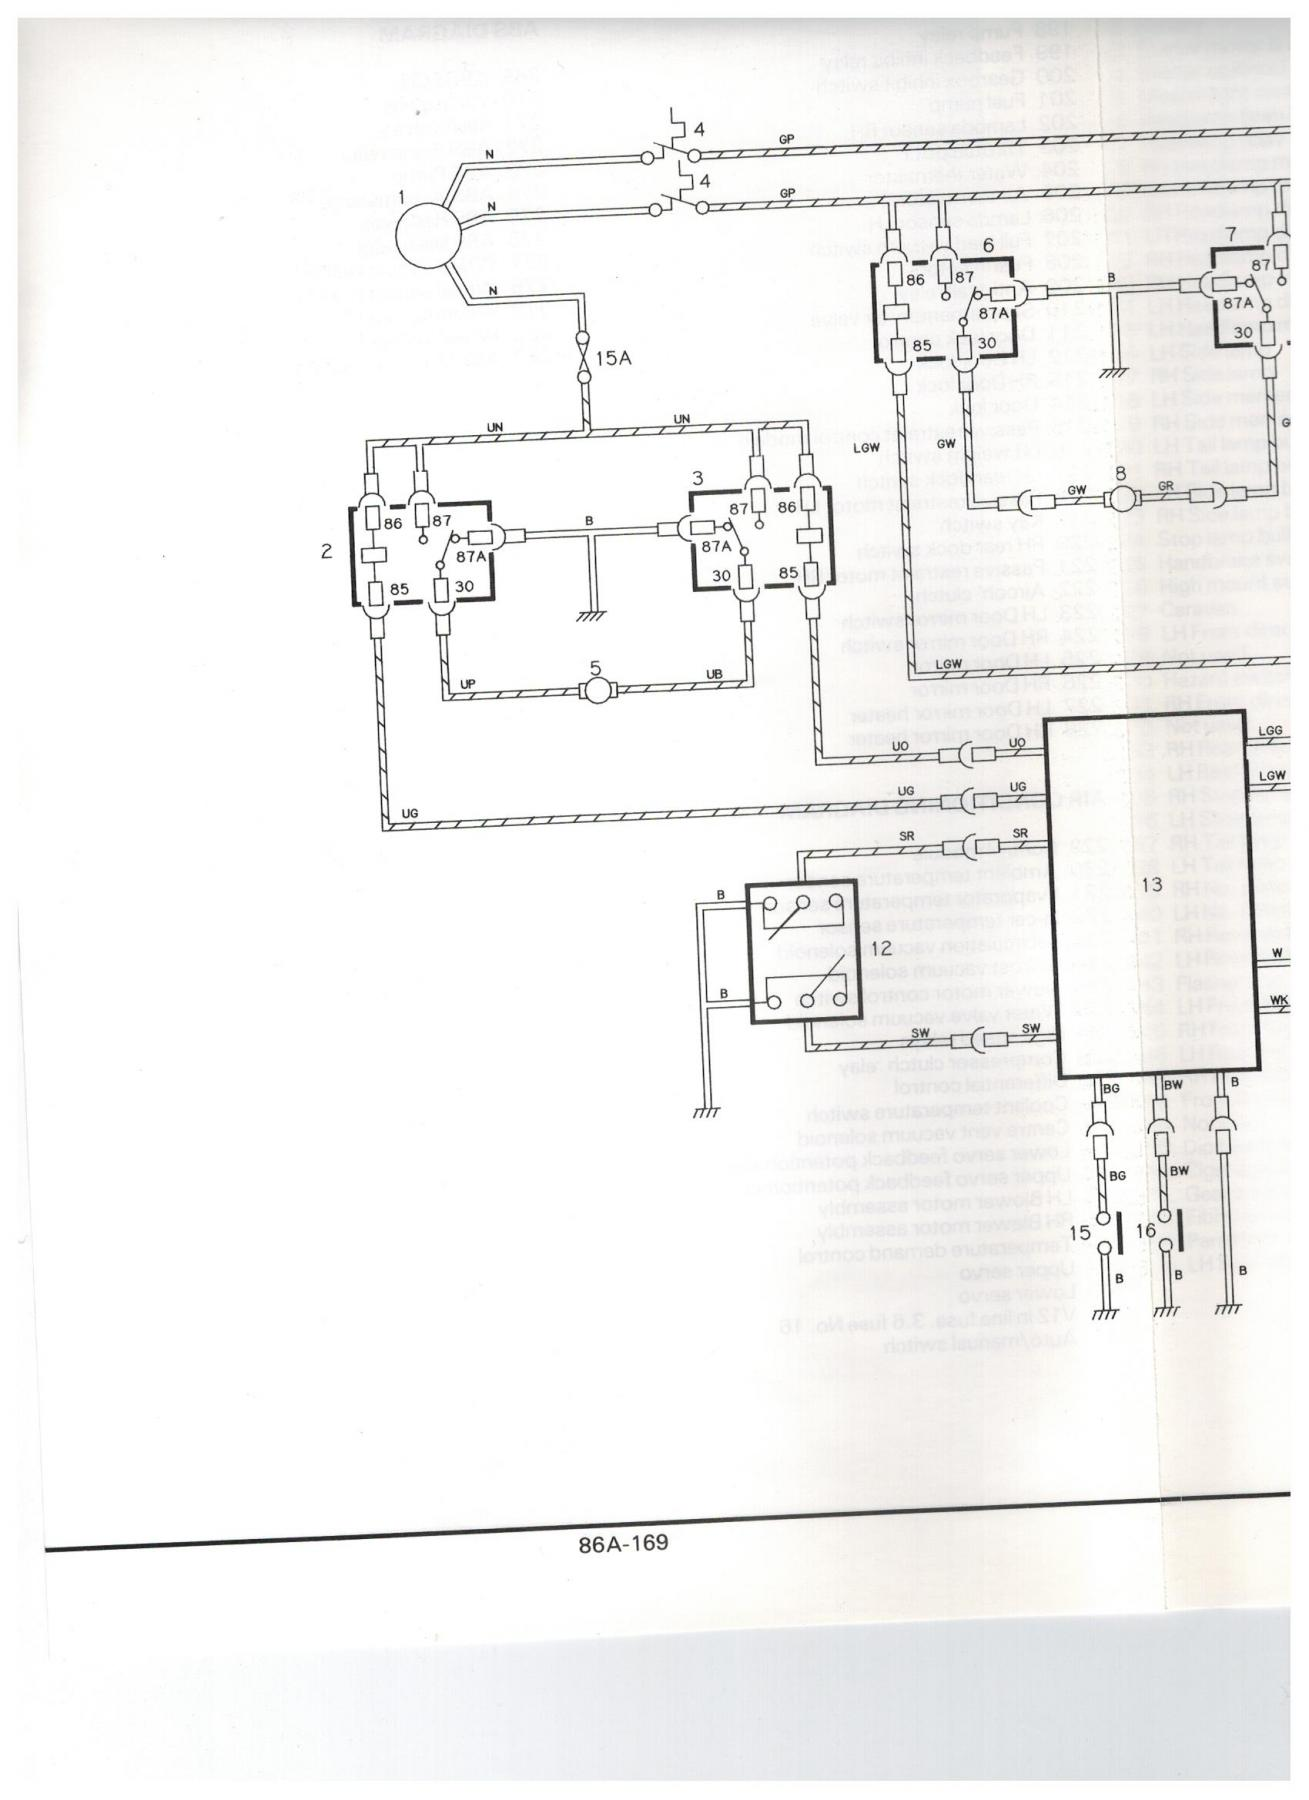 Jaguar Xjs Fuse Box Diagram